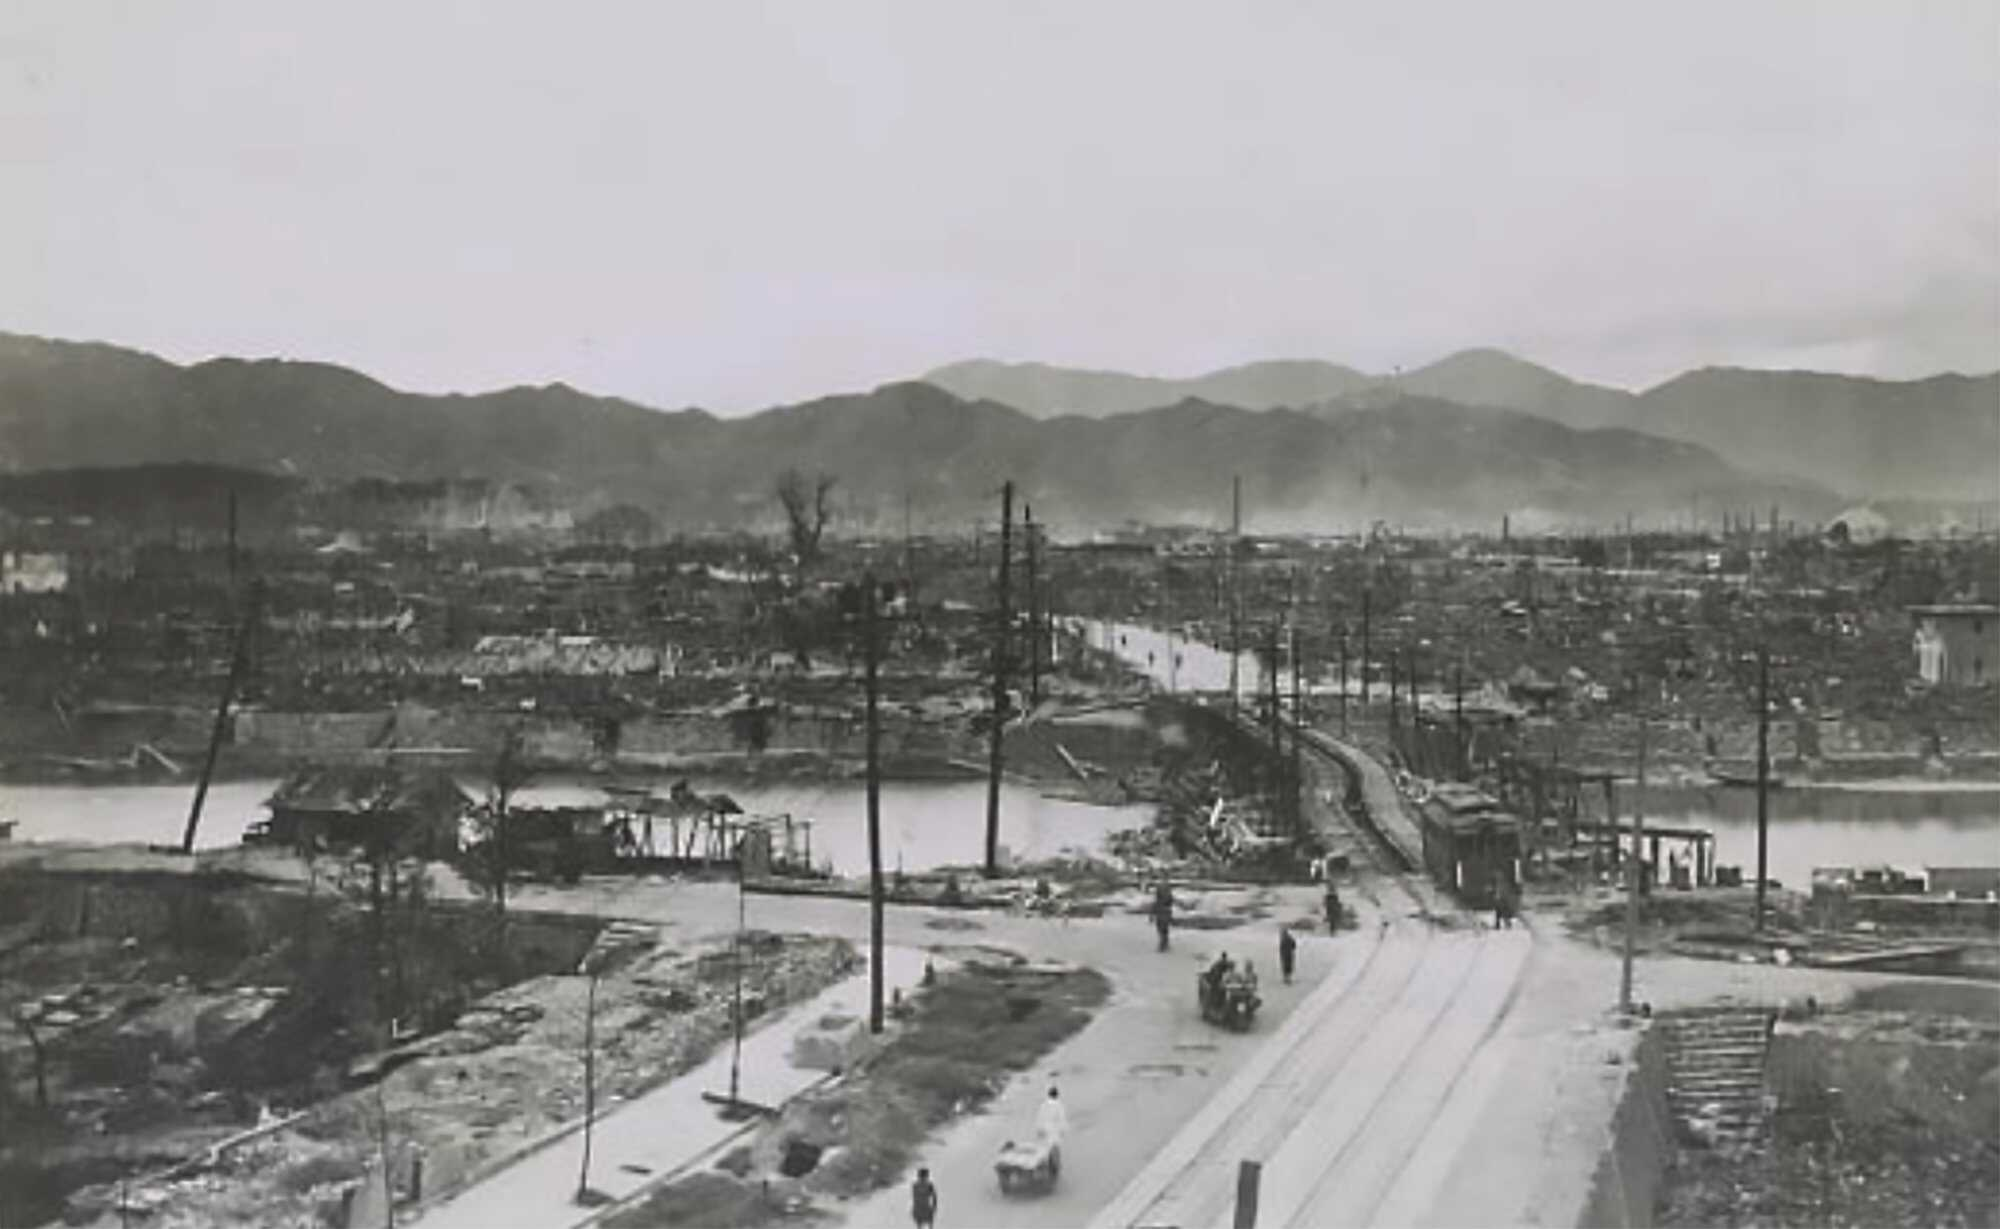 Truman-leaflet-Photograph-shows-aftermath-of-the-August-6,-1945-atomic-bomb-blast-in-Hiroshima,-Japan-1946-LOC.jpg